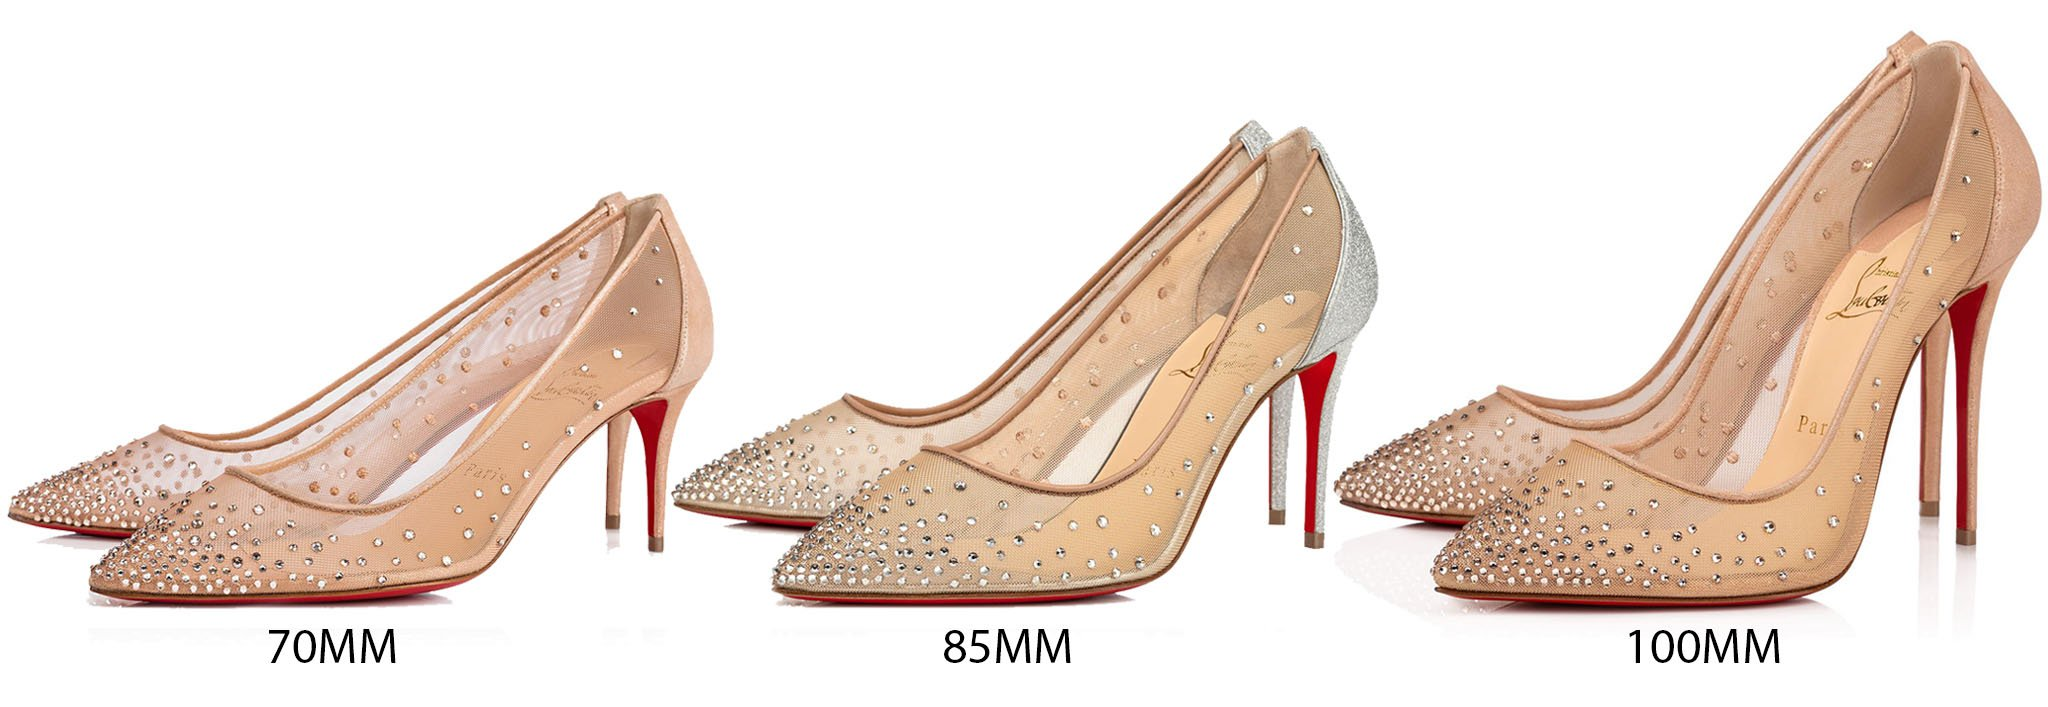 For special occasions, why not opt for the heeled Follies Strass, available in different heel heights